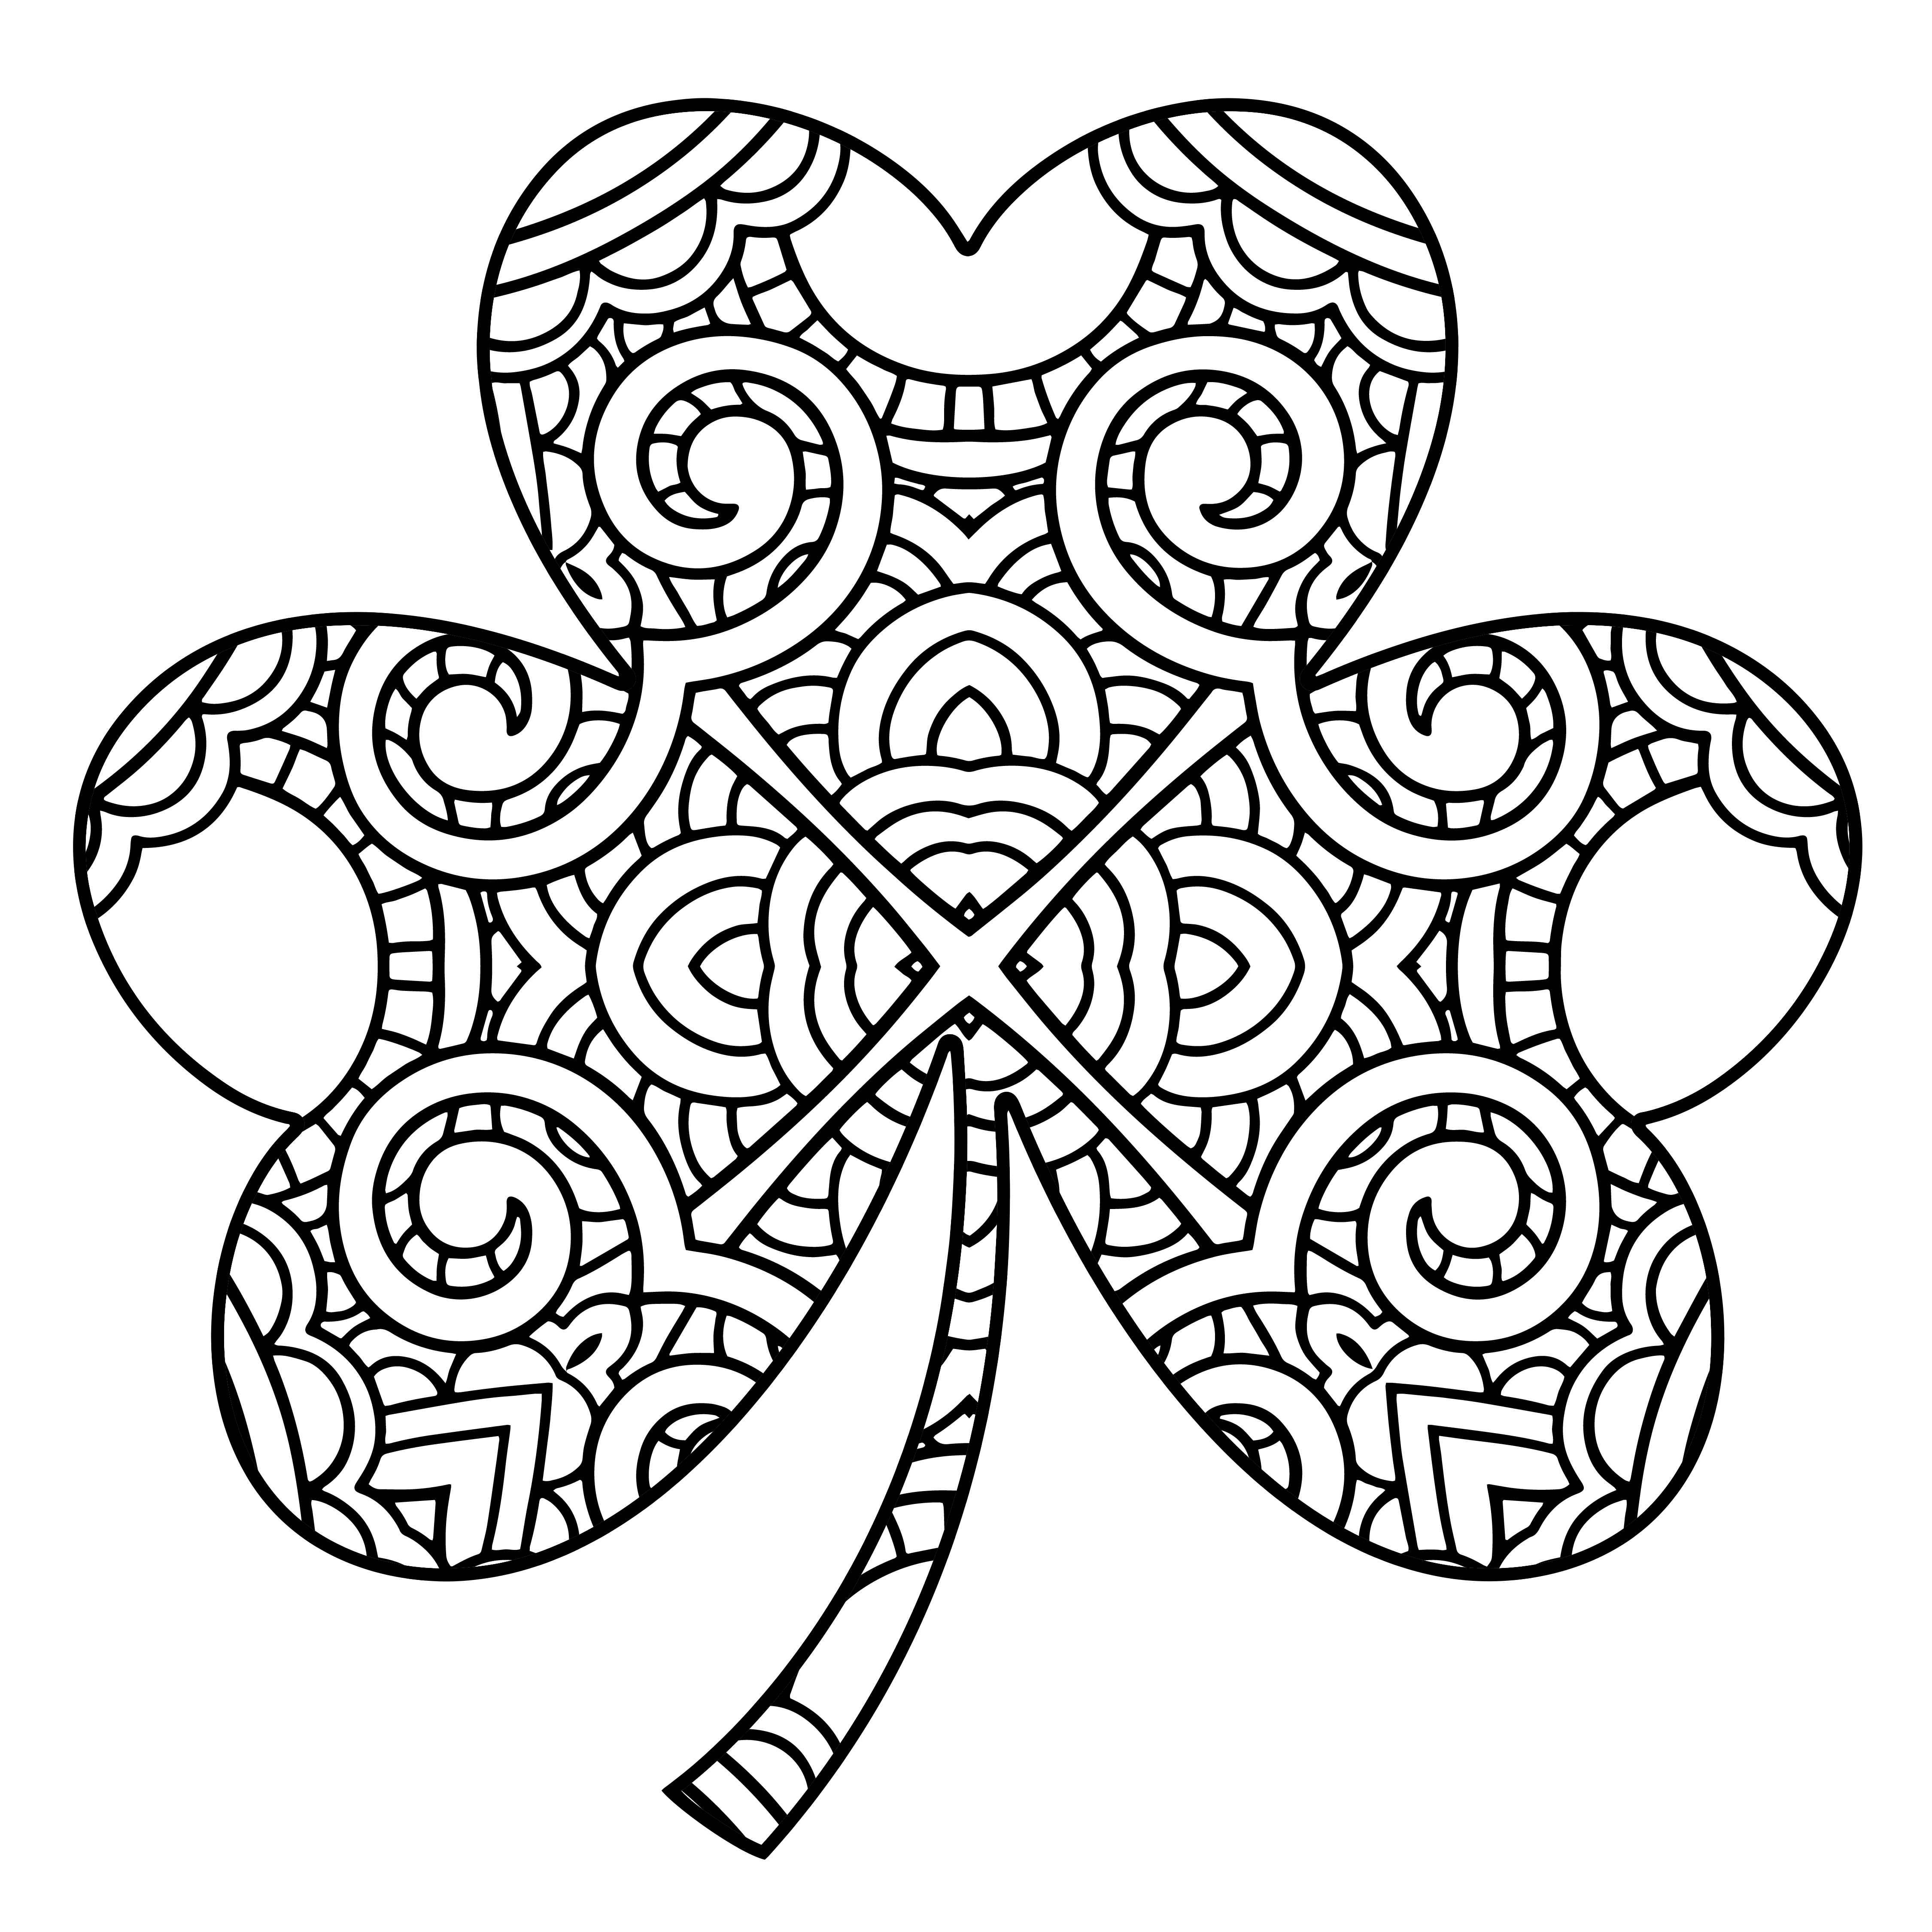 free celtic coloring pages | Celtic Knots Drawing at GetDrawings.com | Free for ...